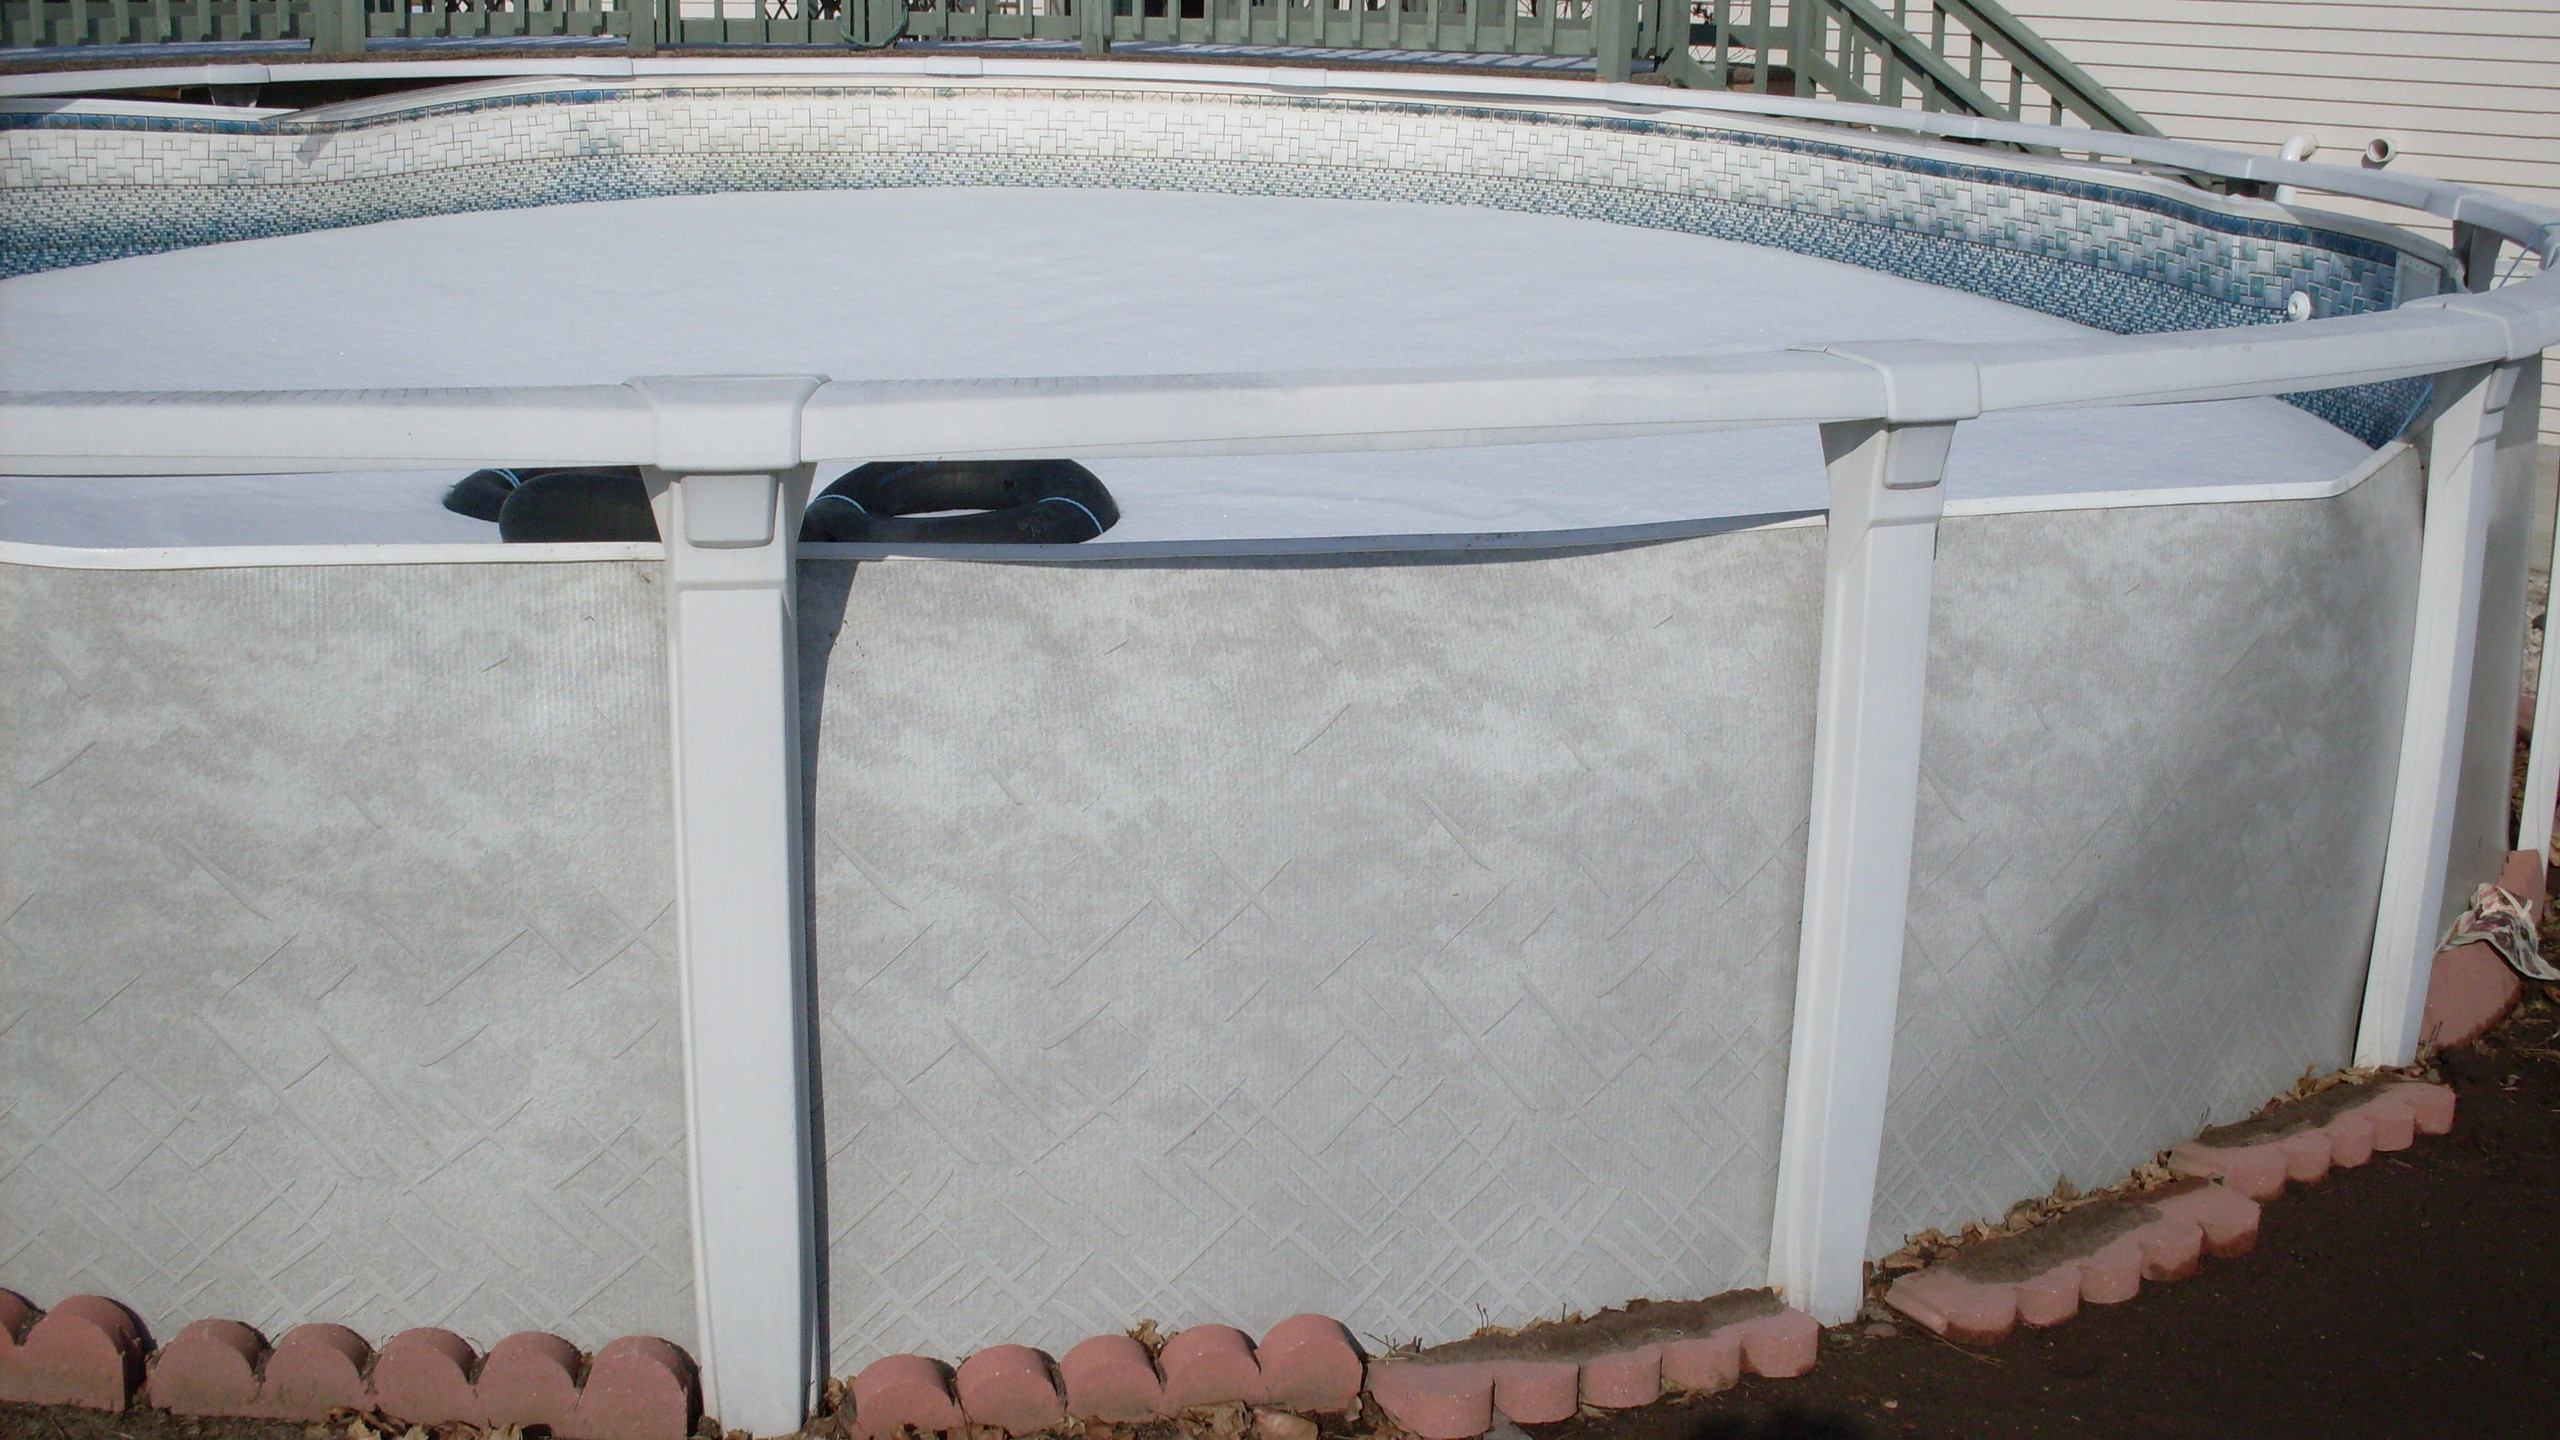 This Aqualeader above ground pool was built in Green Bay, WI and failed due to damage from the use of patio blocks during the installation process.